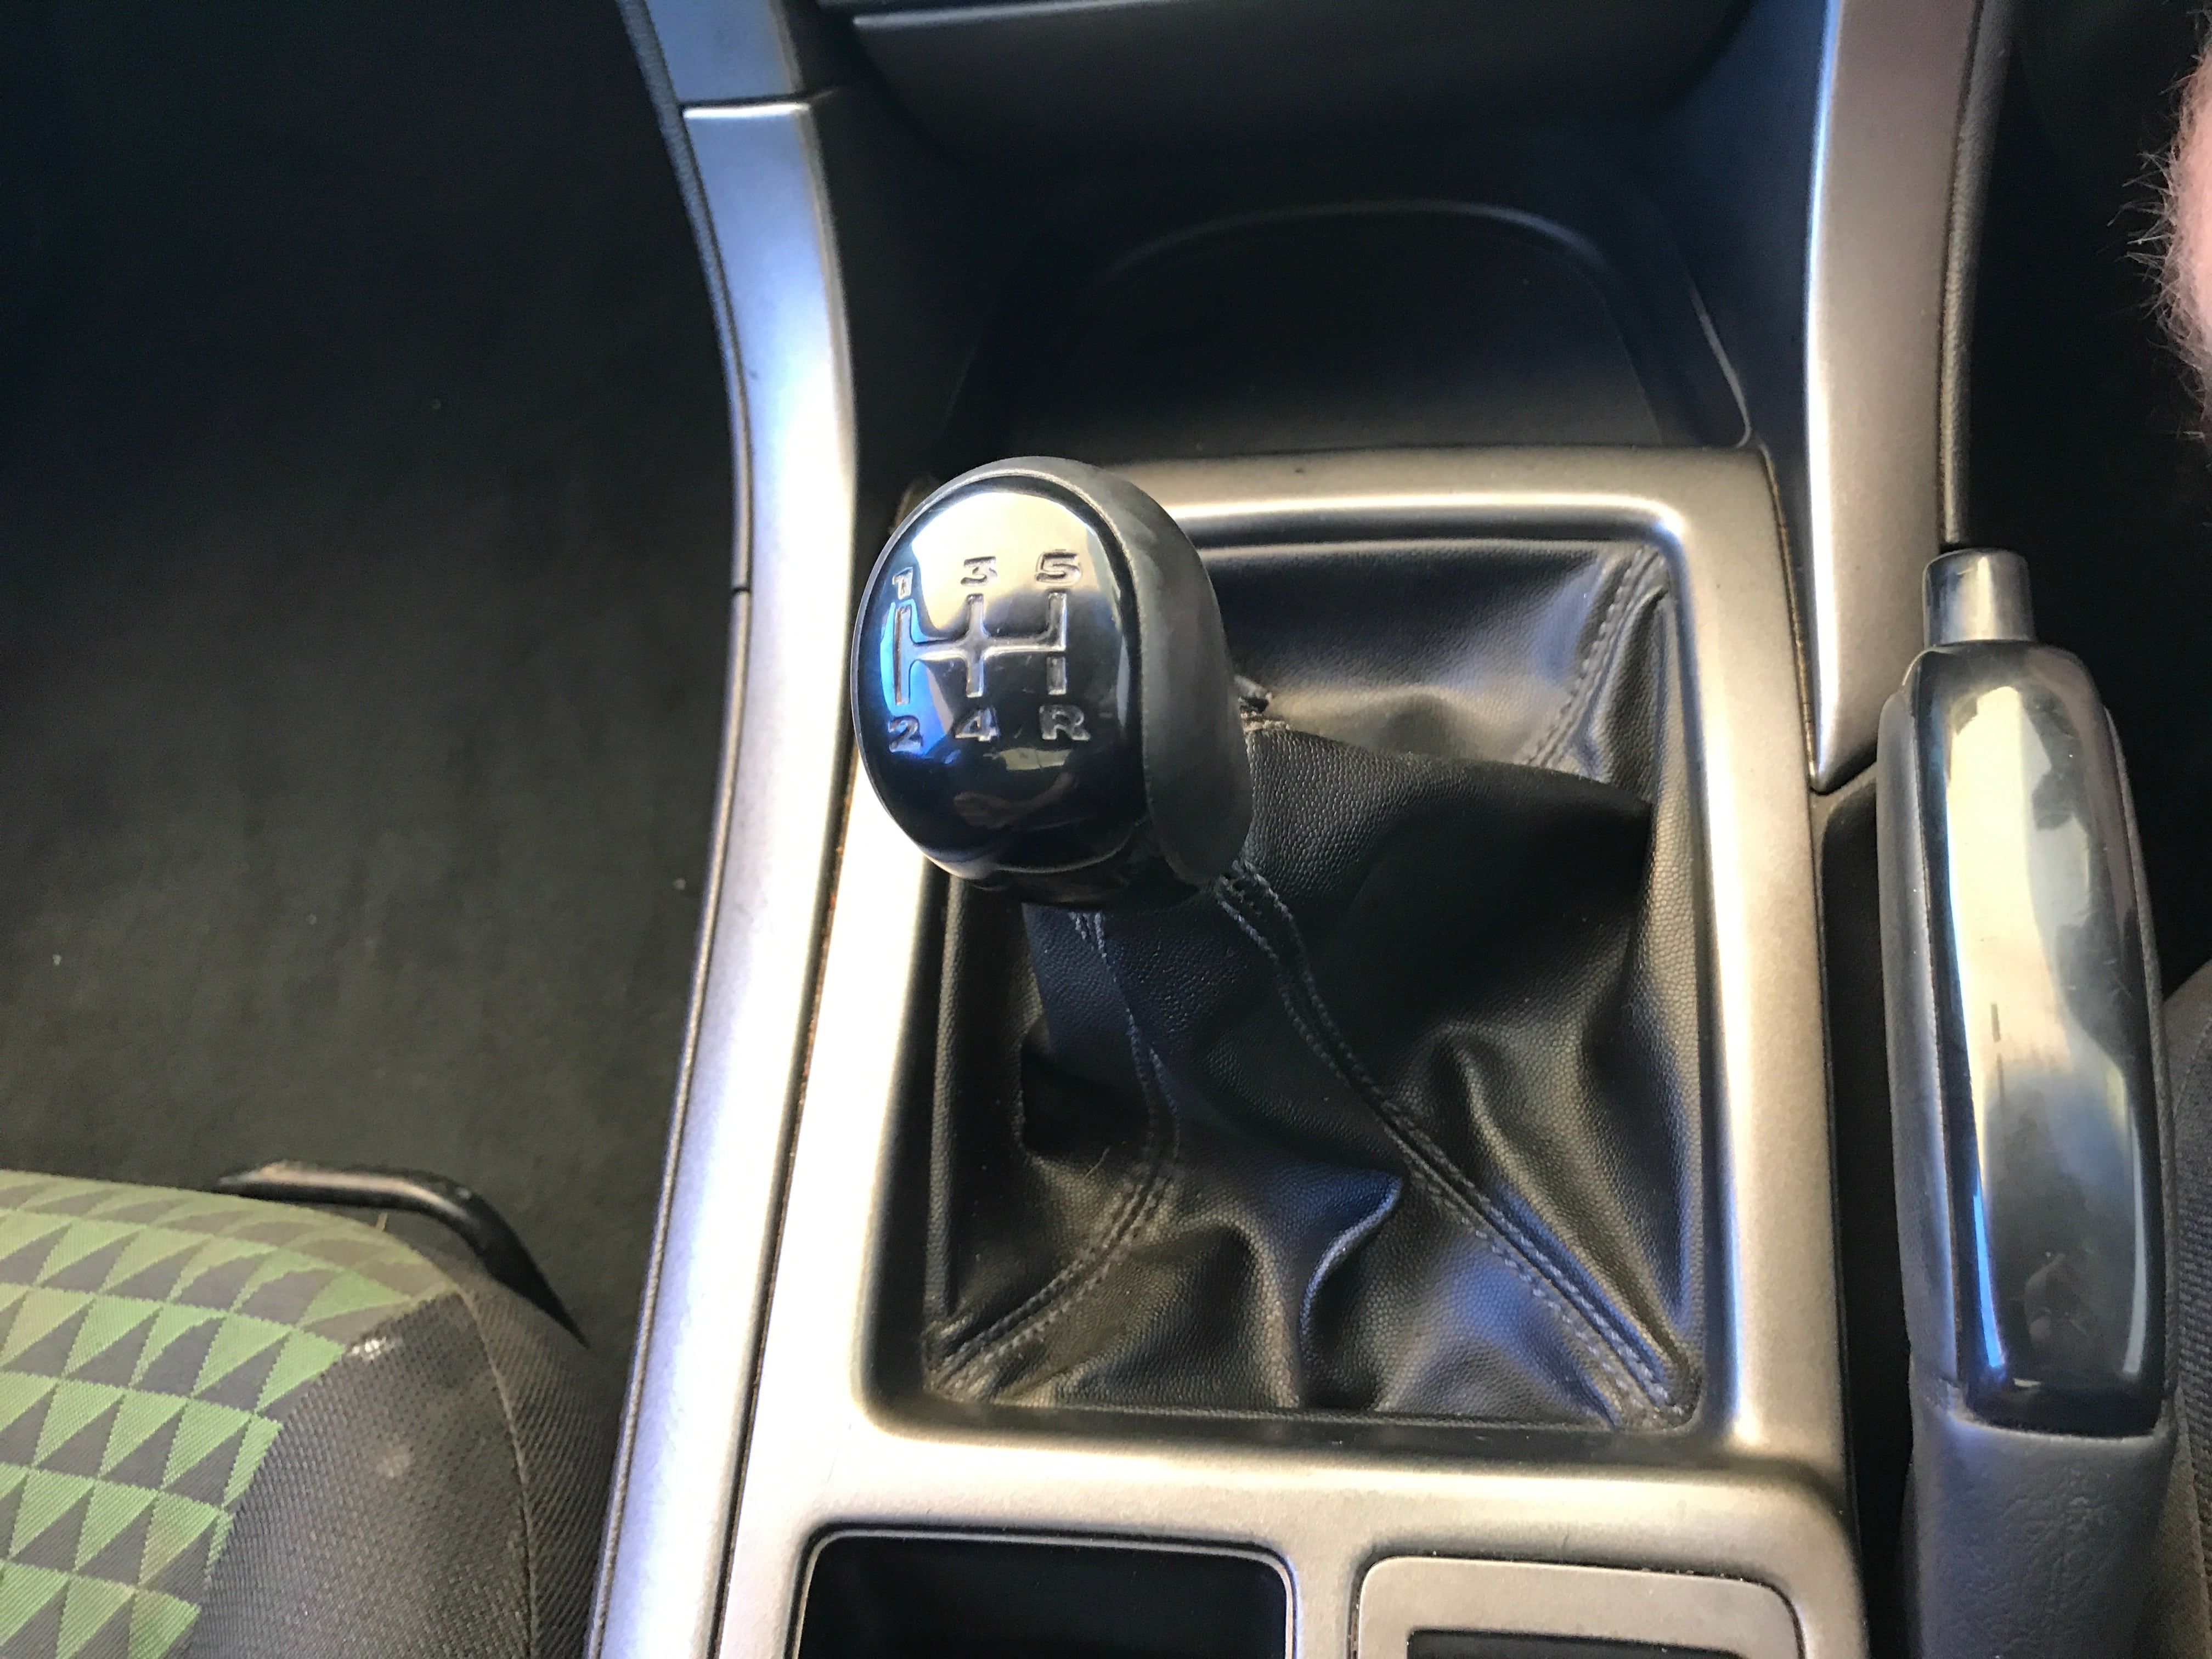 Manual Commodore Ute VY 6 cylinder with hardlid 2003 for sale 13-min